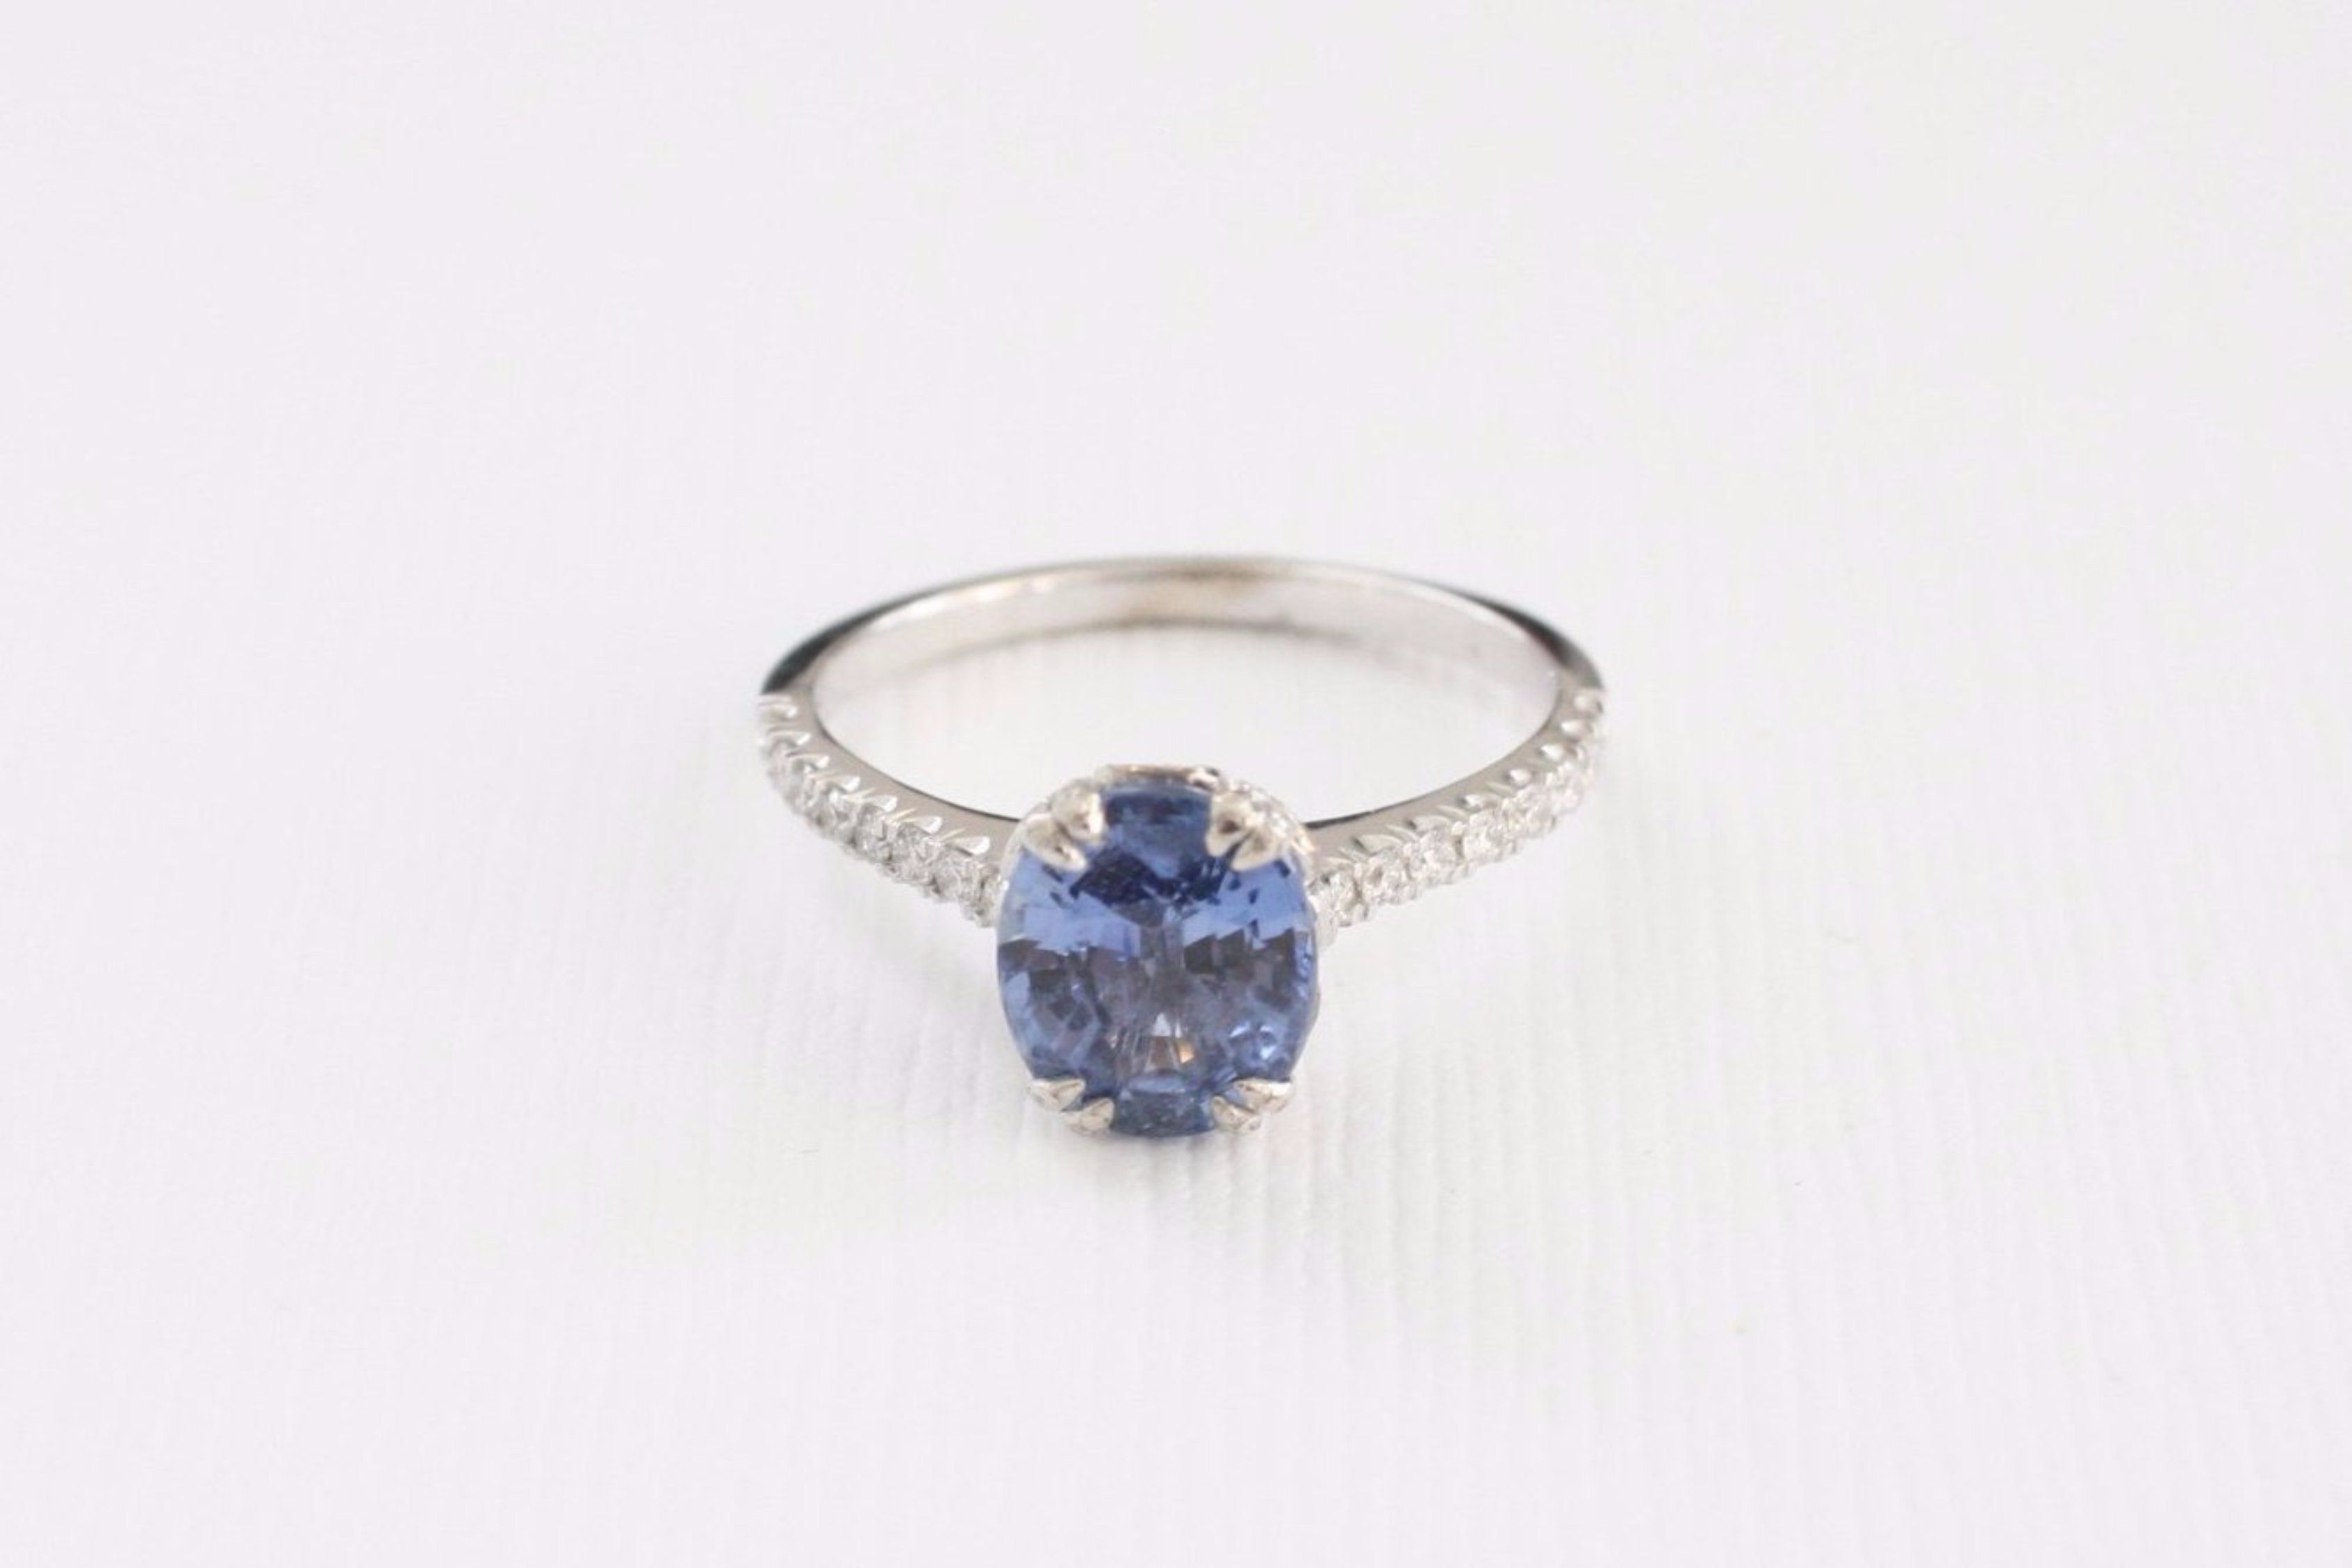 j solitaire antique gypsy at ring sapphire jewelry victorian rings org blue id